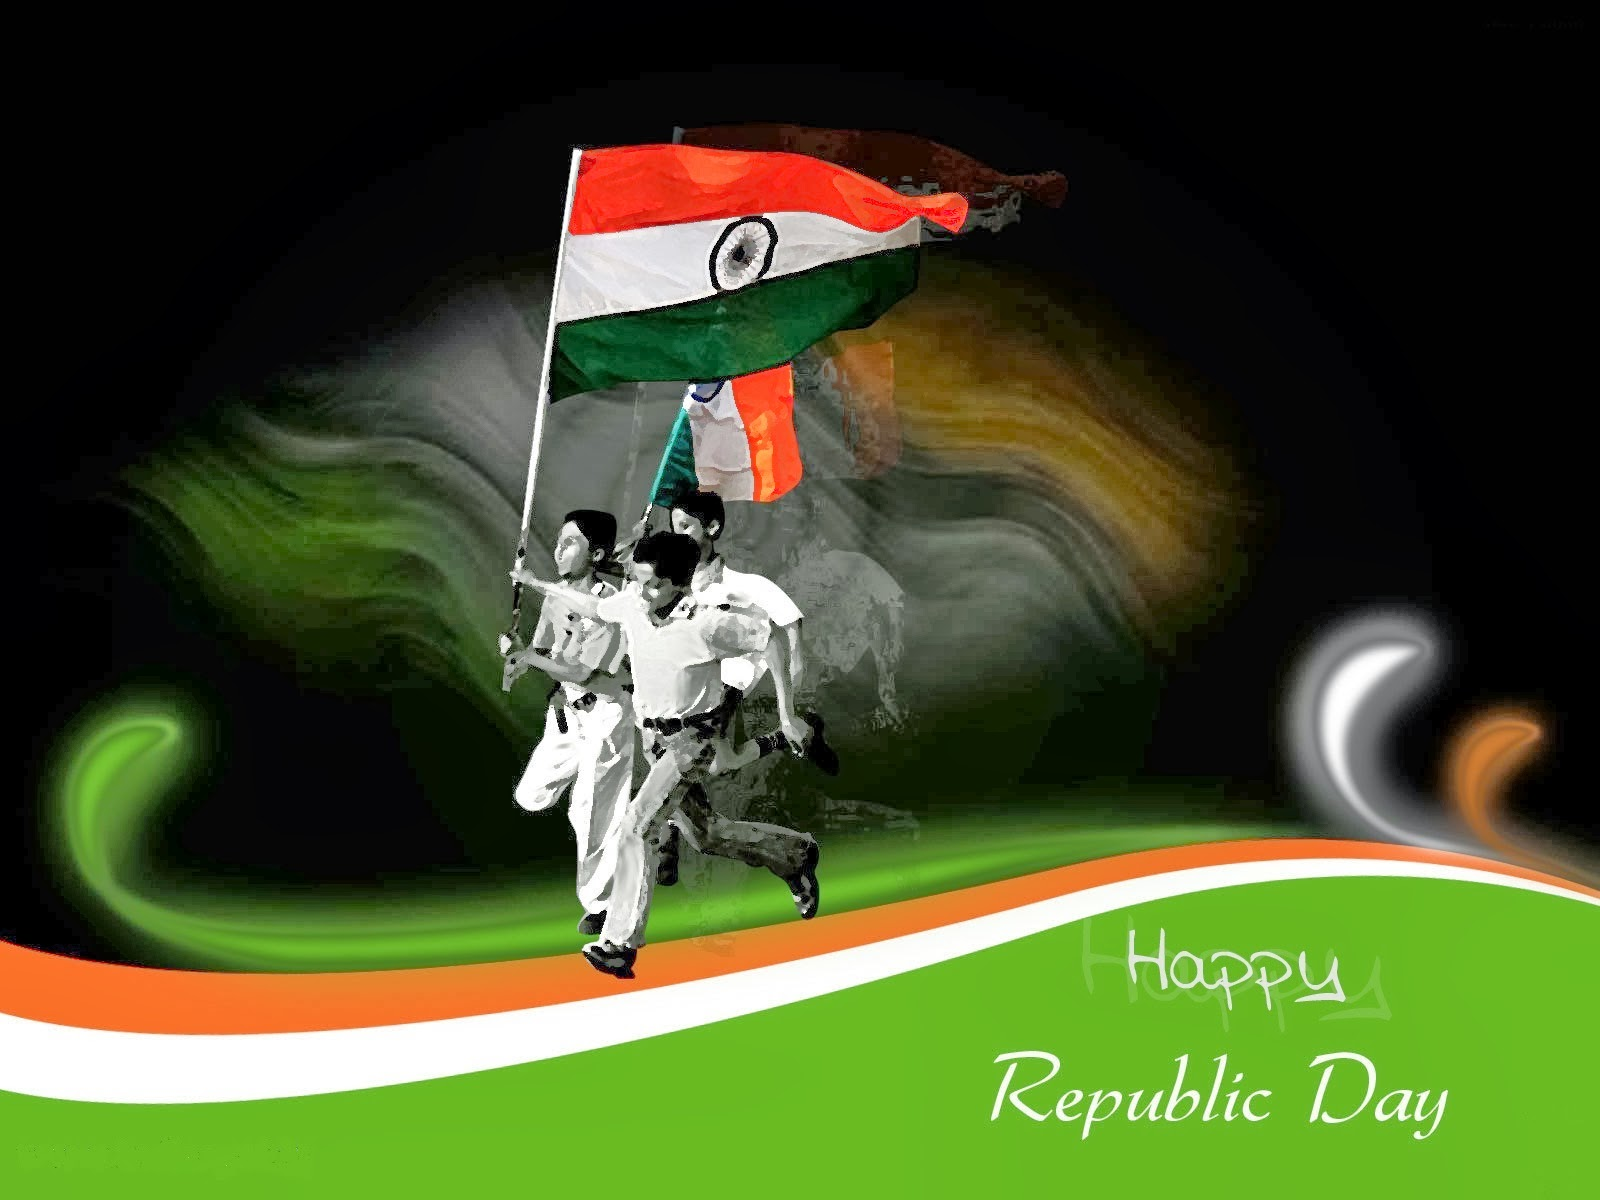 26 Jan Happy 70th Republic Day Wishes Quotes Whatsapp Status Dp